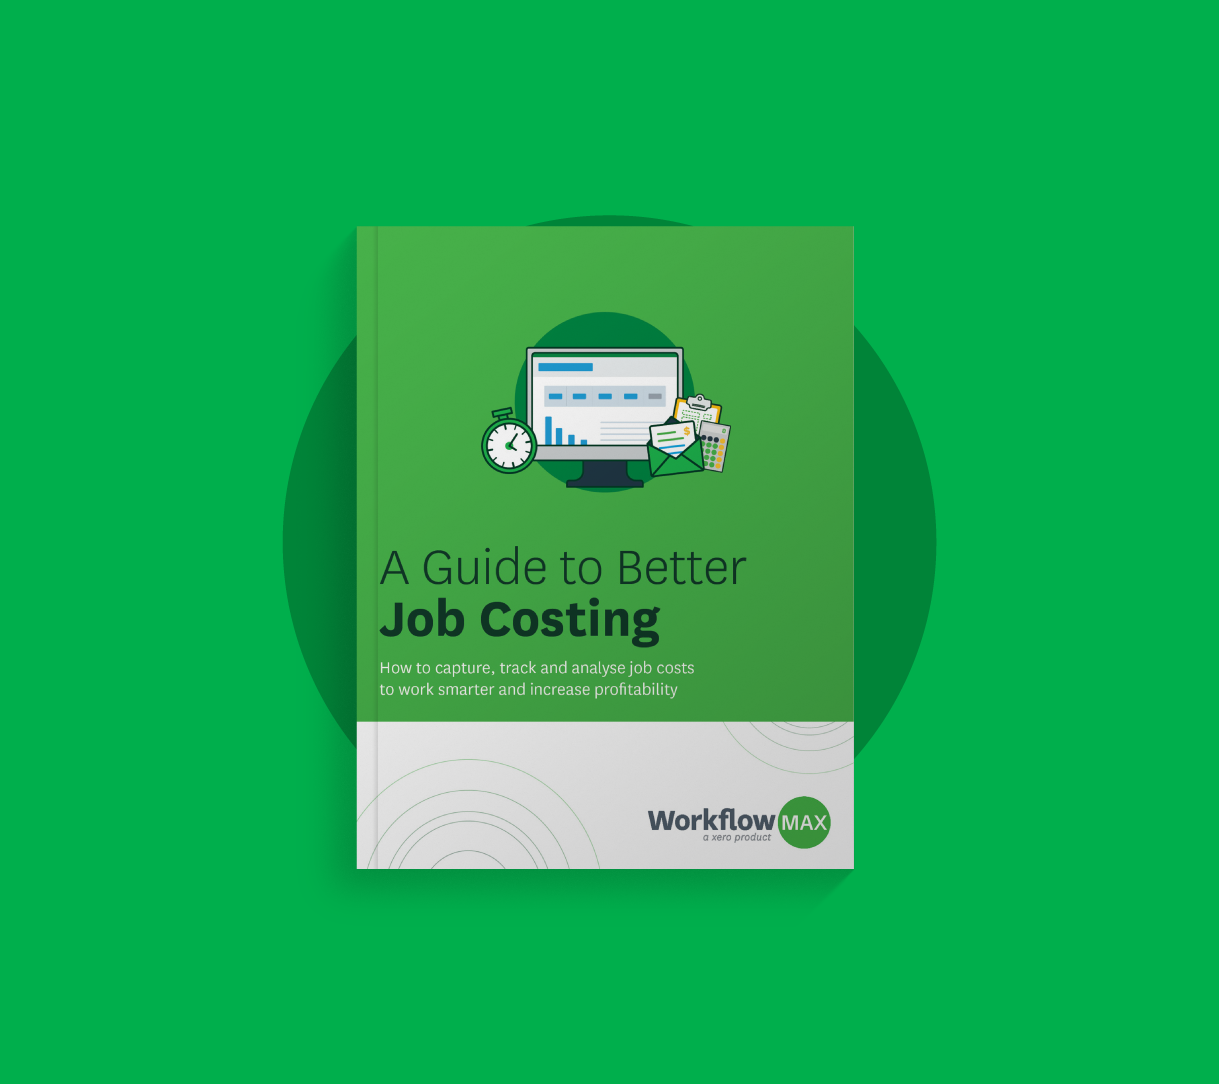 A guide to better job costing